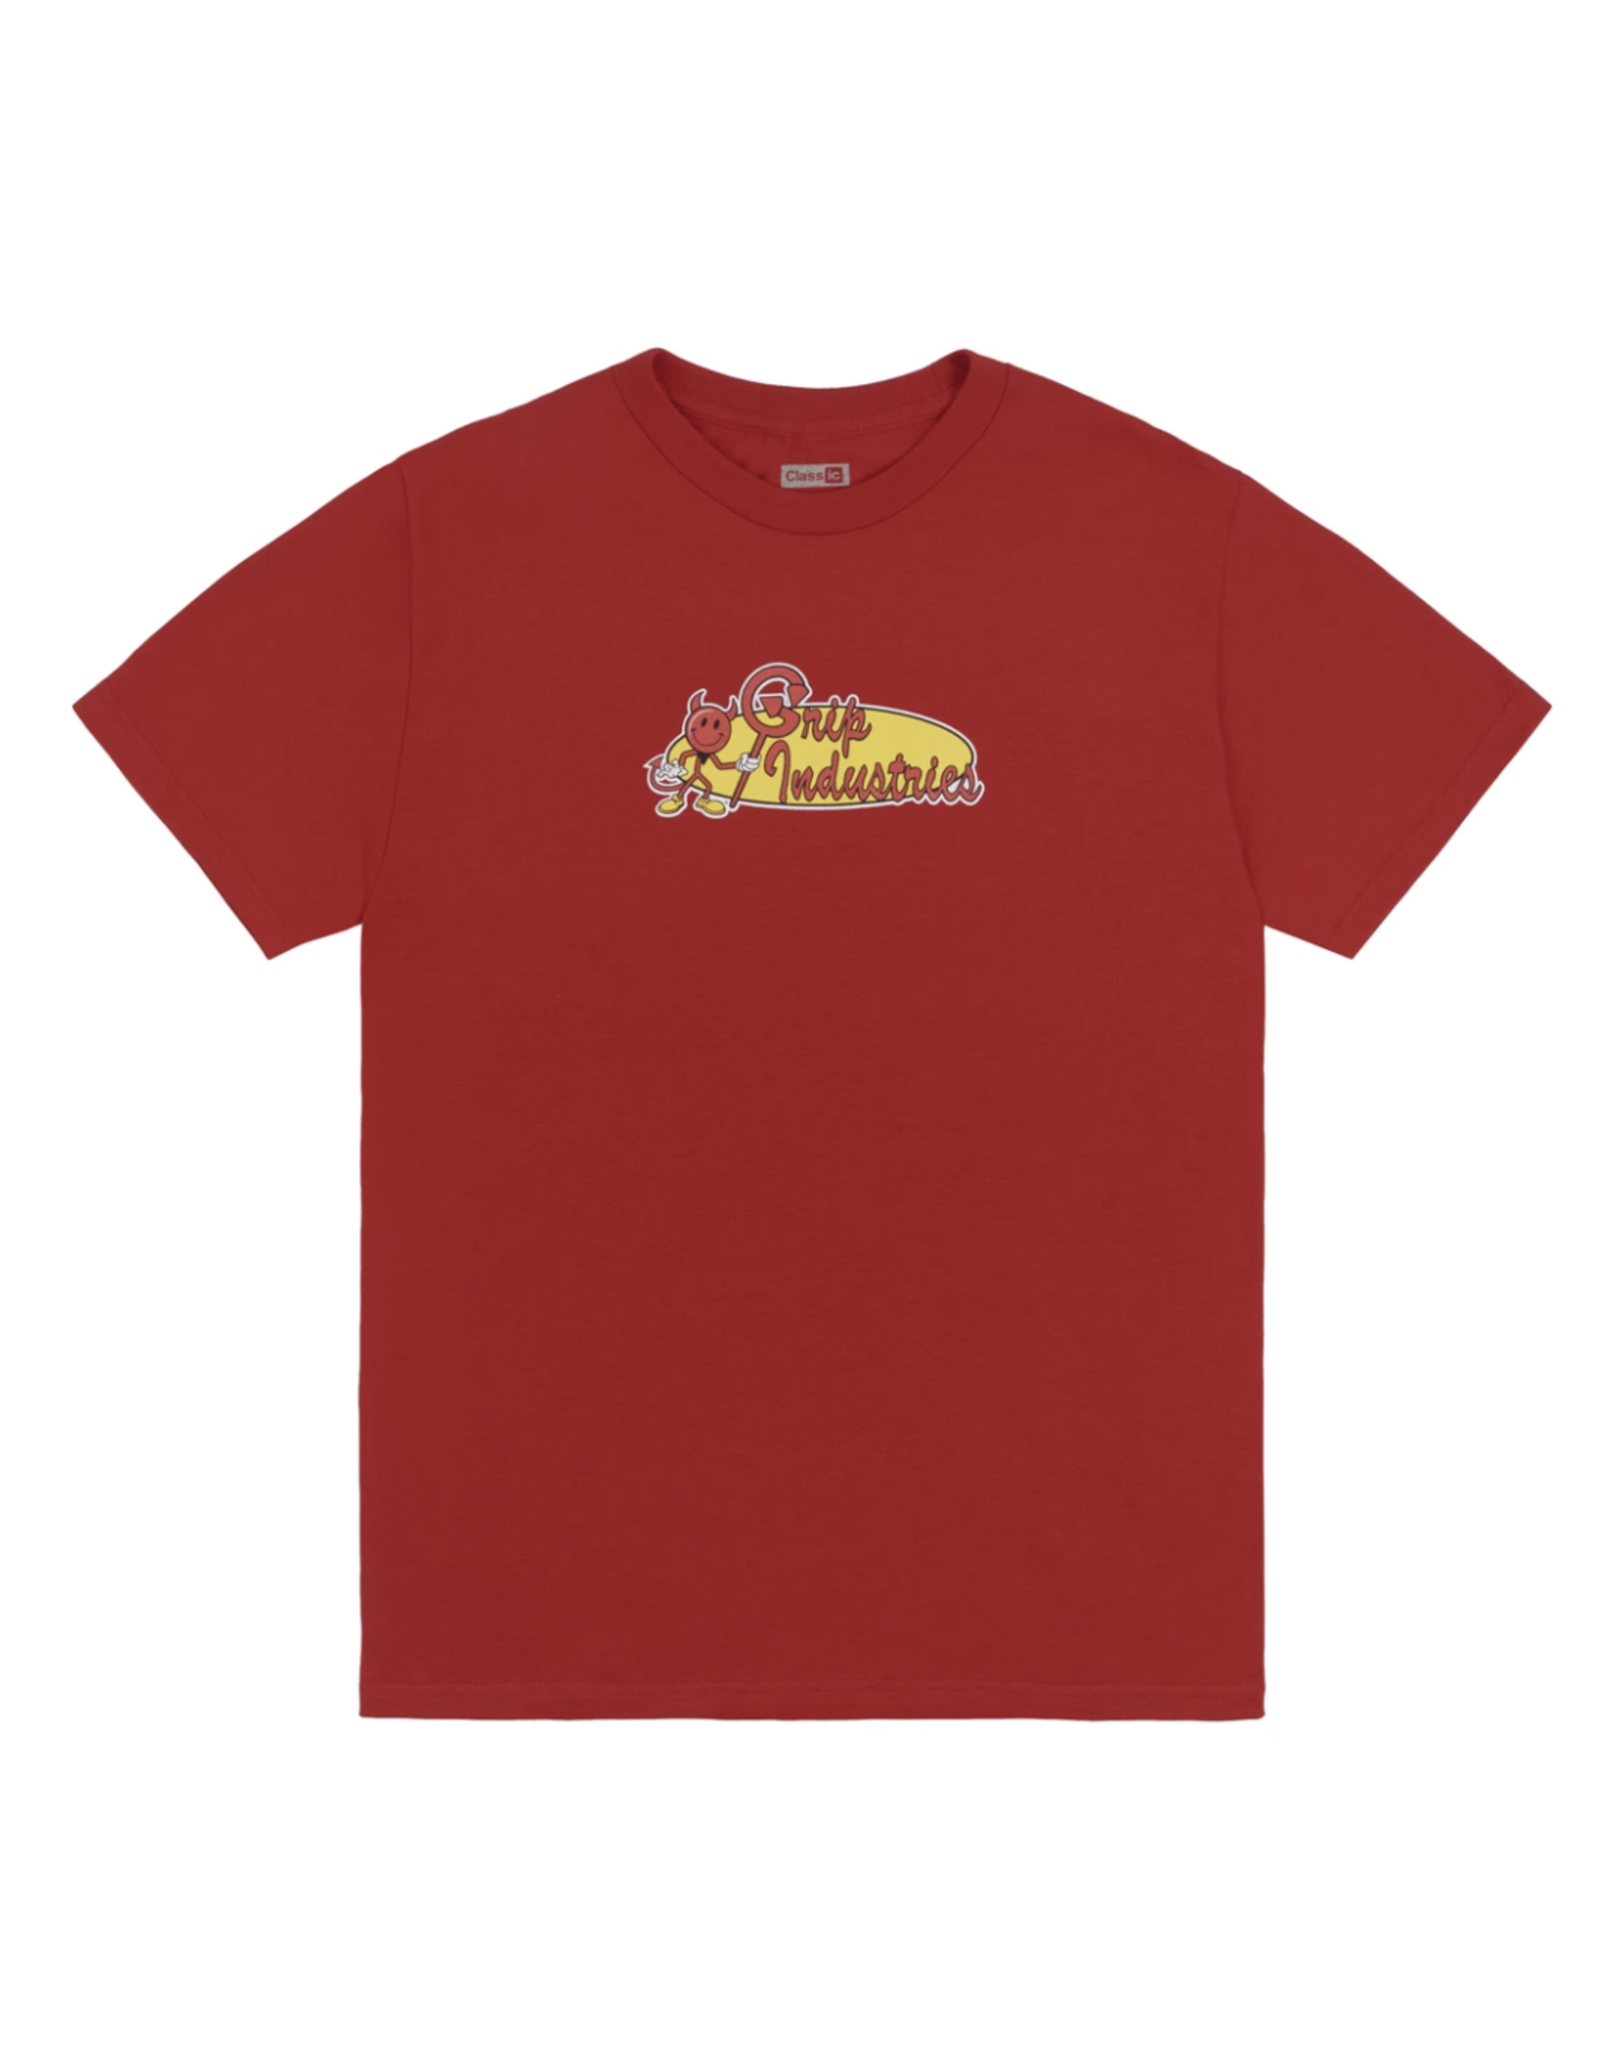 Classic Grip Industries T-Shirt - Red